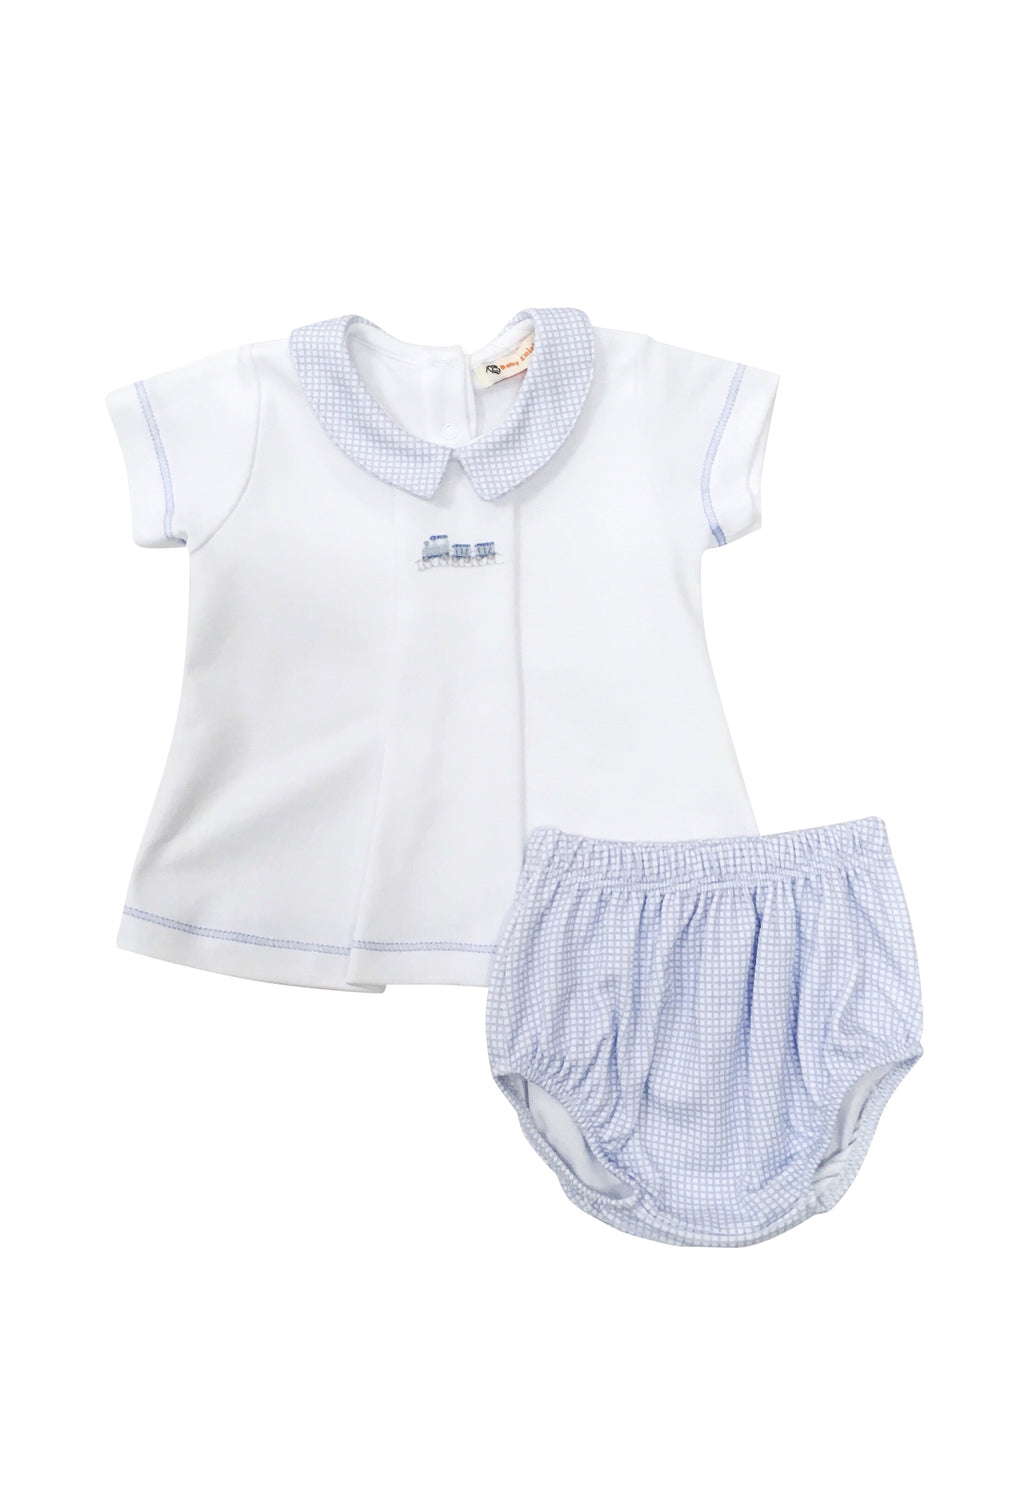 Boy White with Blue Gingham Knit Bloomer Set - Train - Born Childrens Boutique